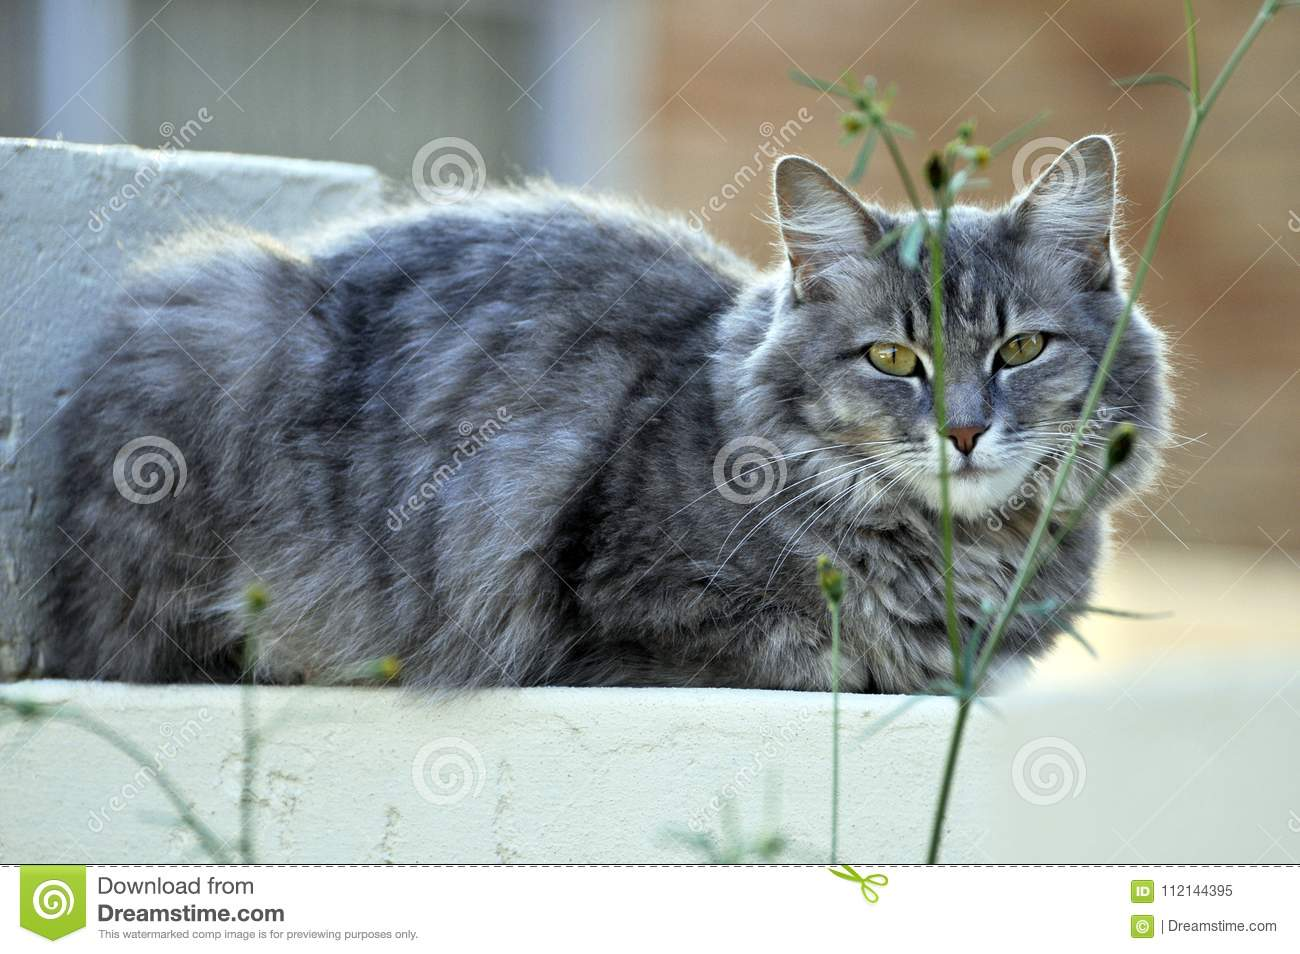 Pretty Grey Cat With Paws Folded Relaxing On A Garden Wall While Keeping A Watchful Eye From Behind The Branches Of A Small Shrub